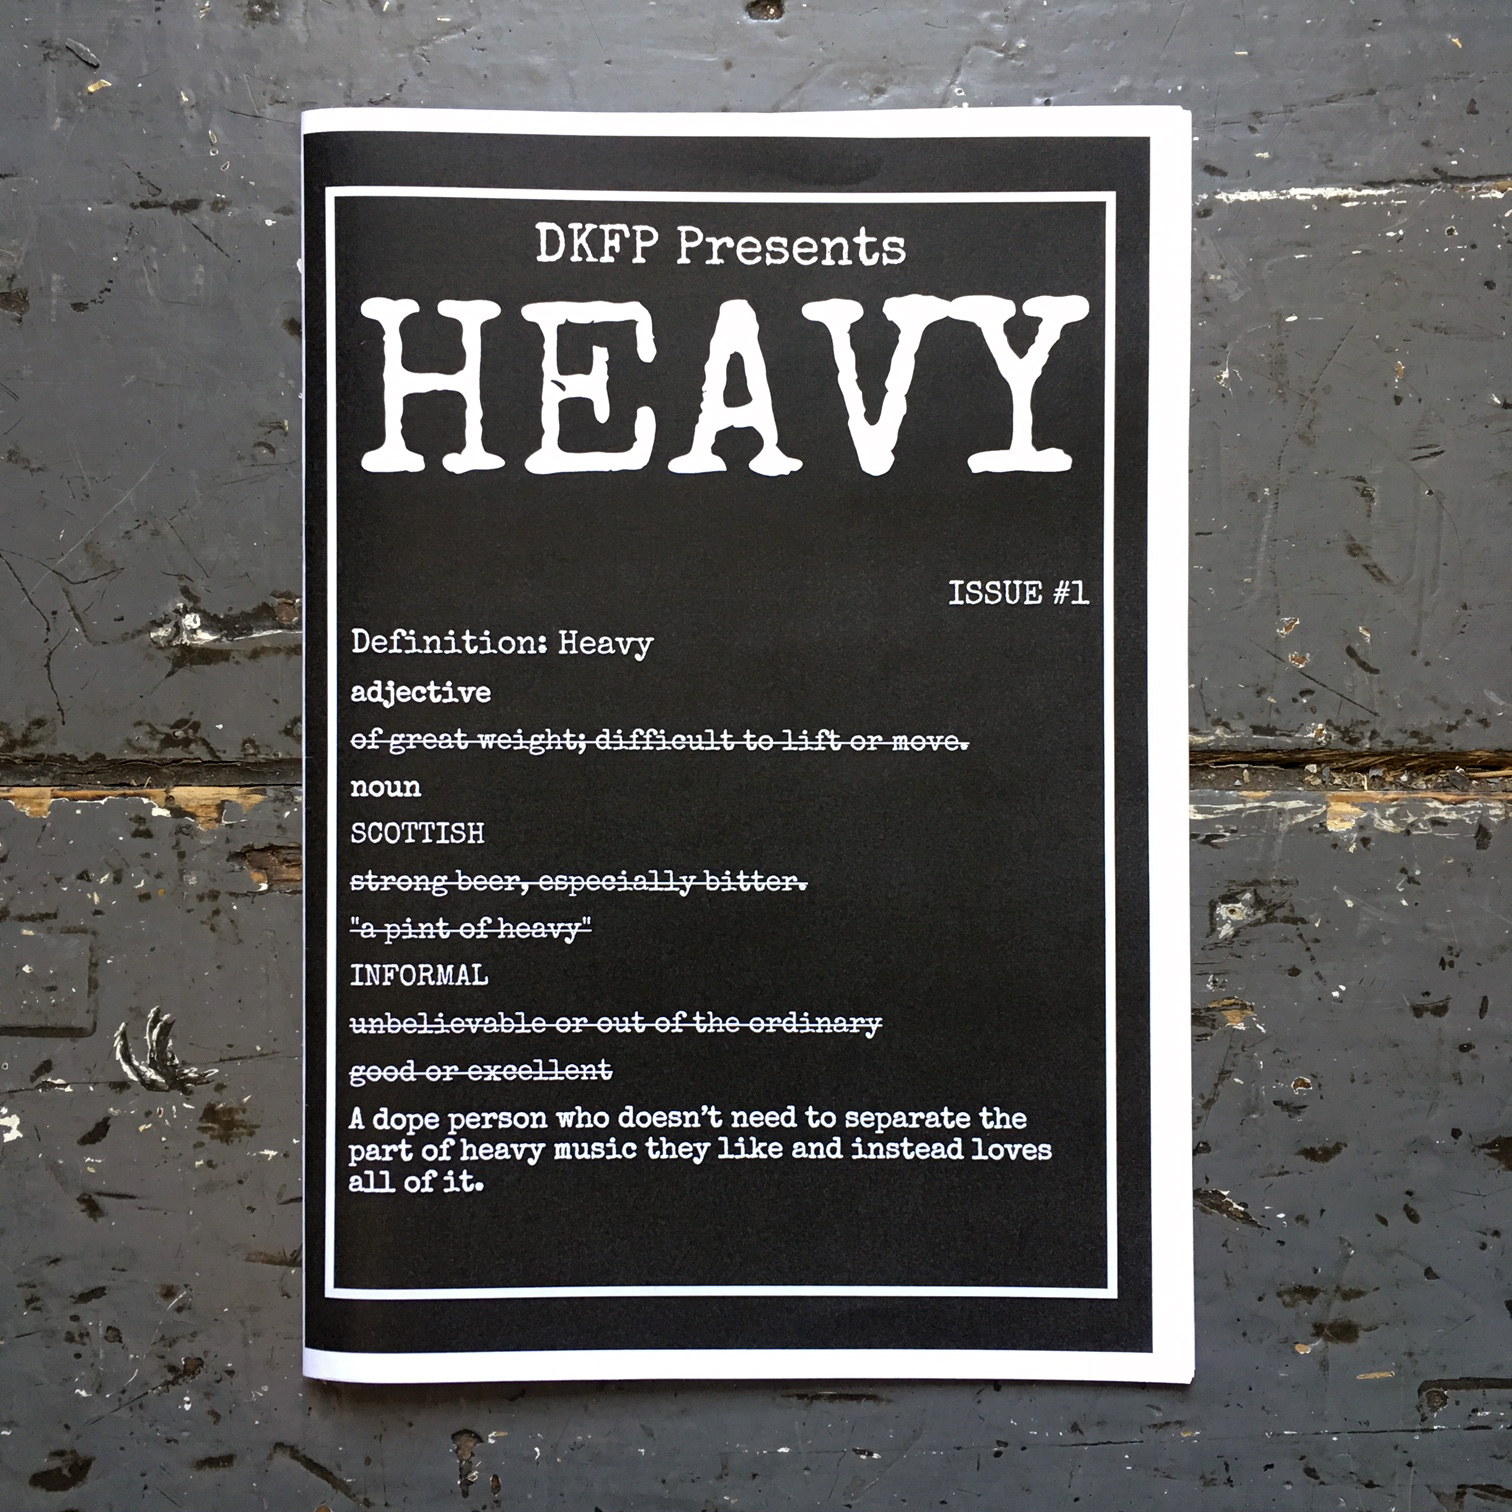 DKFP Presents: Heavy - issue #1